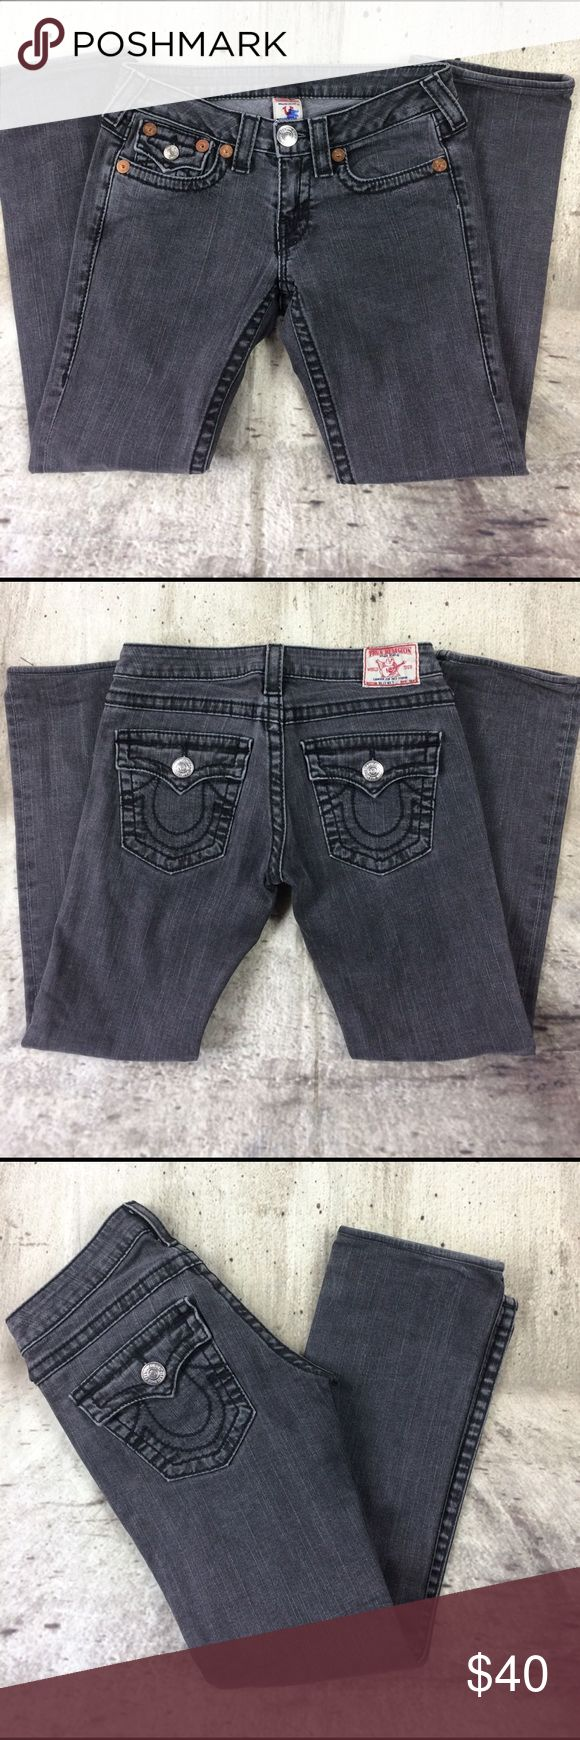 "True Religion low rise jeans True Religion straight leg jeans cotton and spandex blend inseam 29""rise 7.5"" True Religion Jeans Straight Leg"